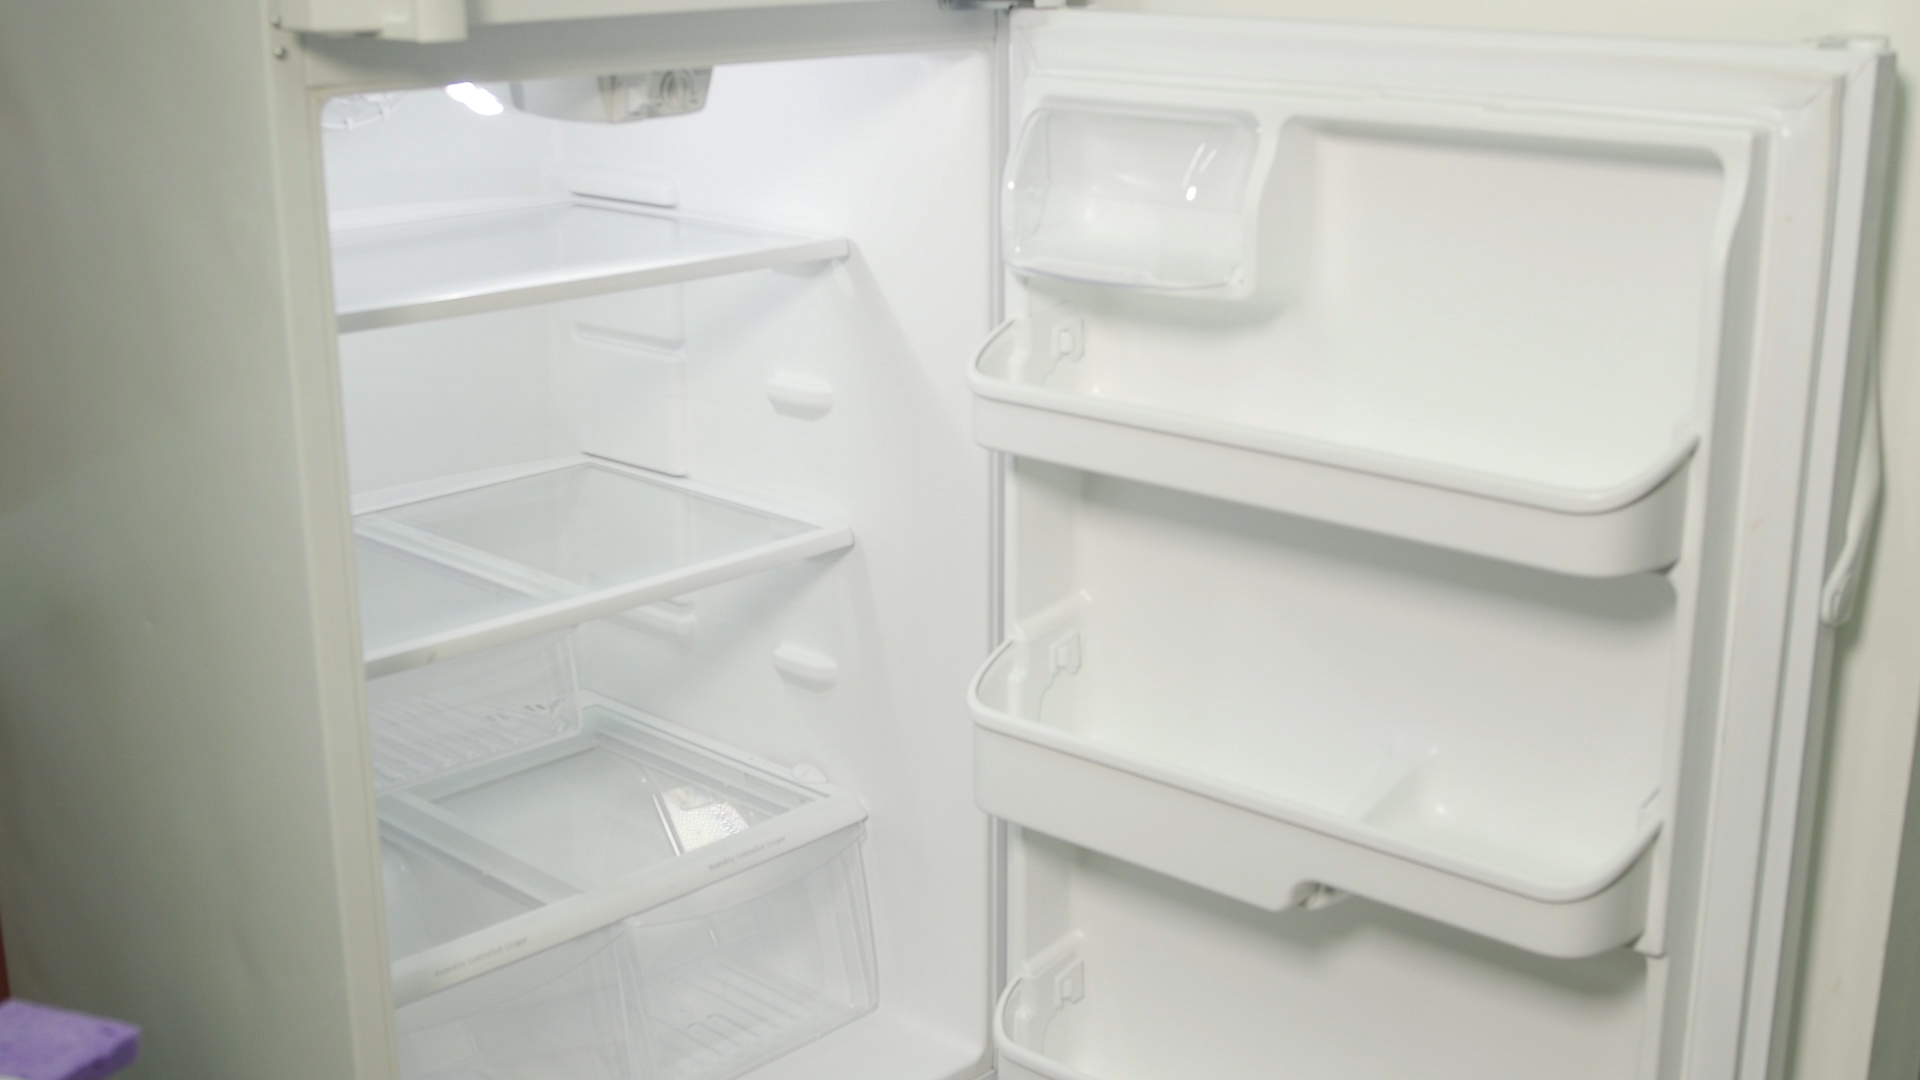 How to Get Rid of Funky Refrigerator Smells - Consumer Reports